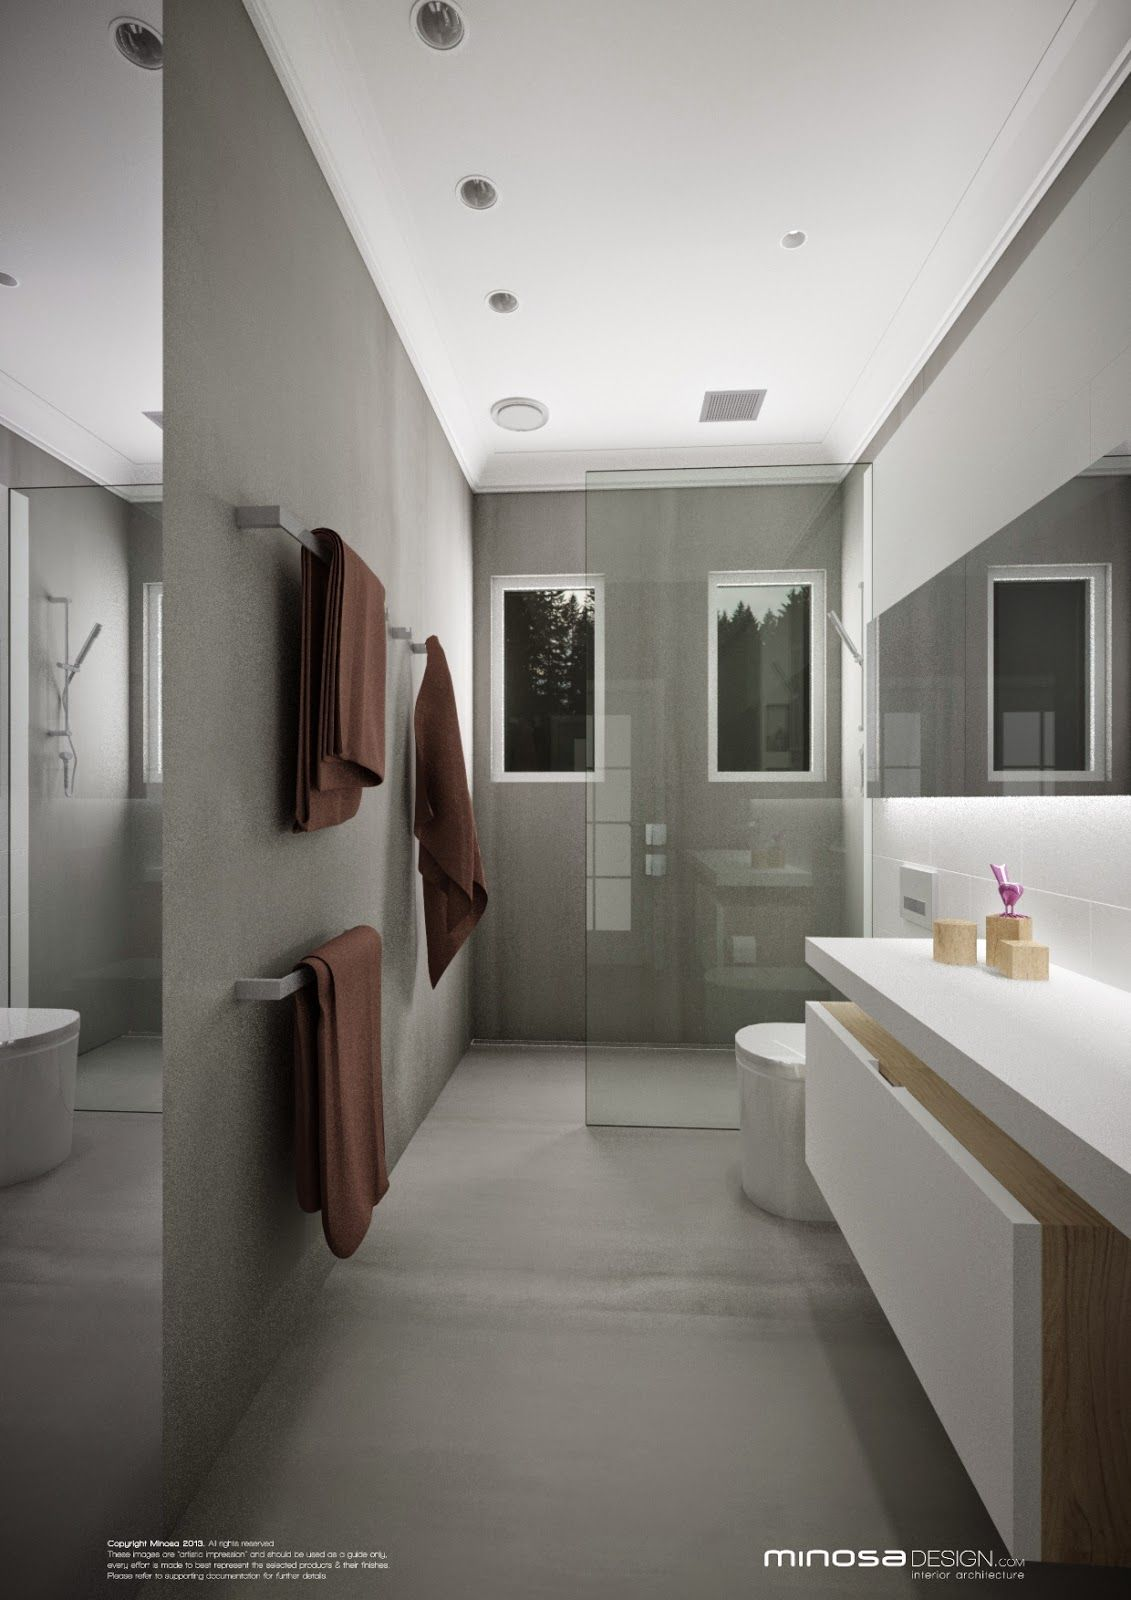 Sehr kleine badezimmerideen minosa design converting a small bathroom  best use of space